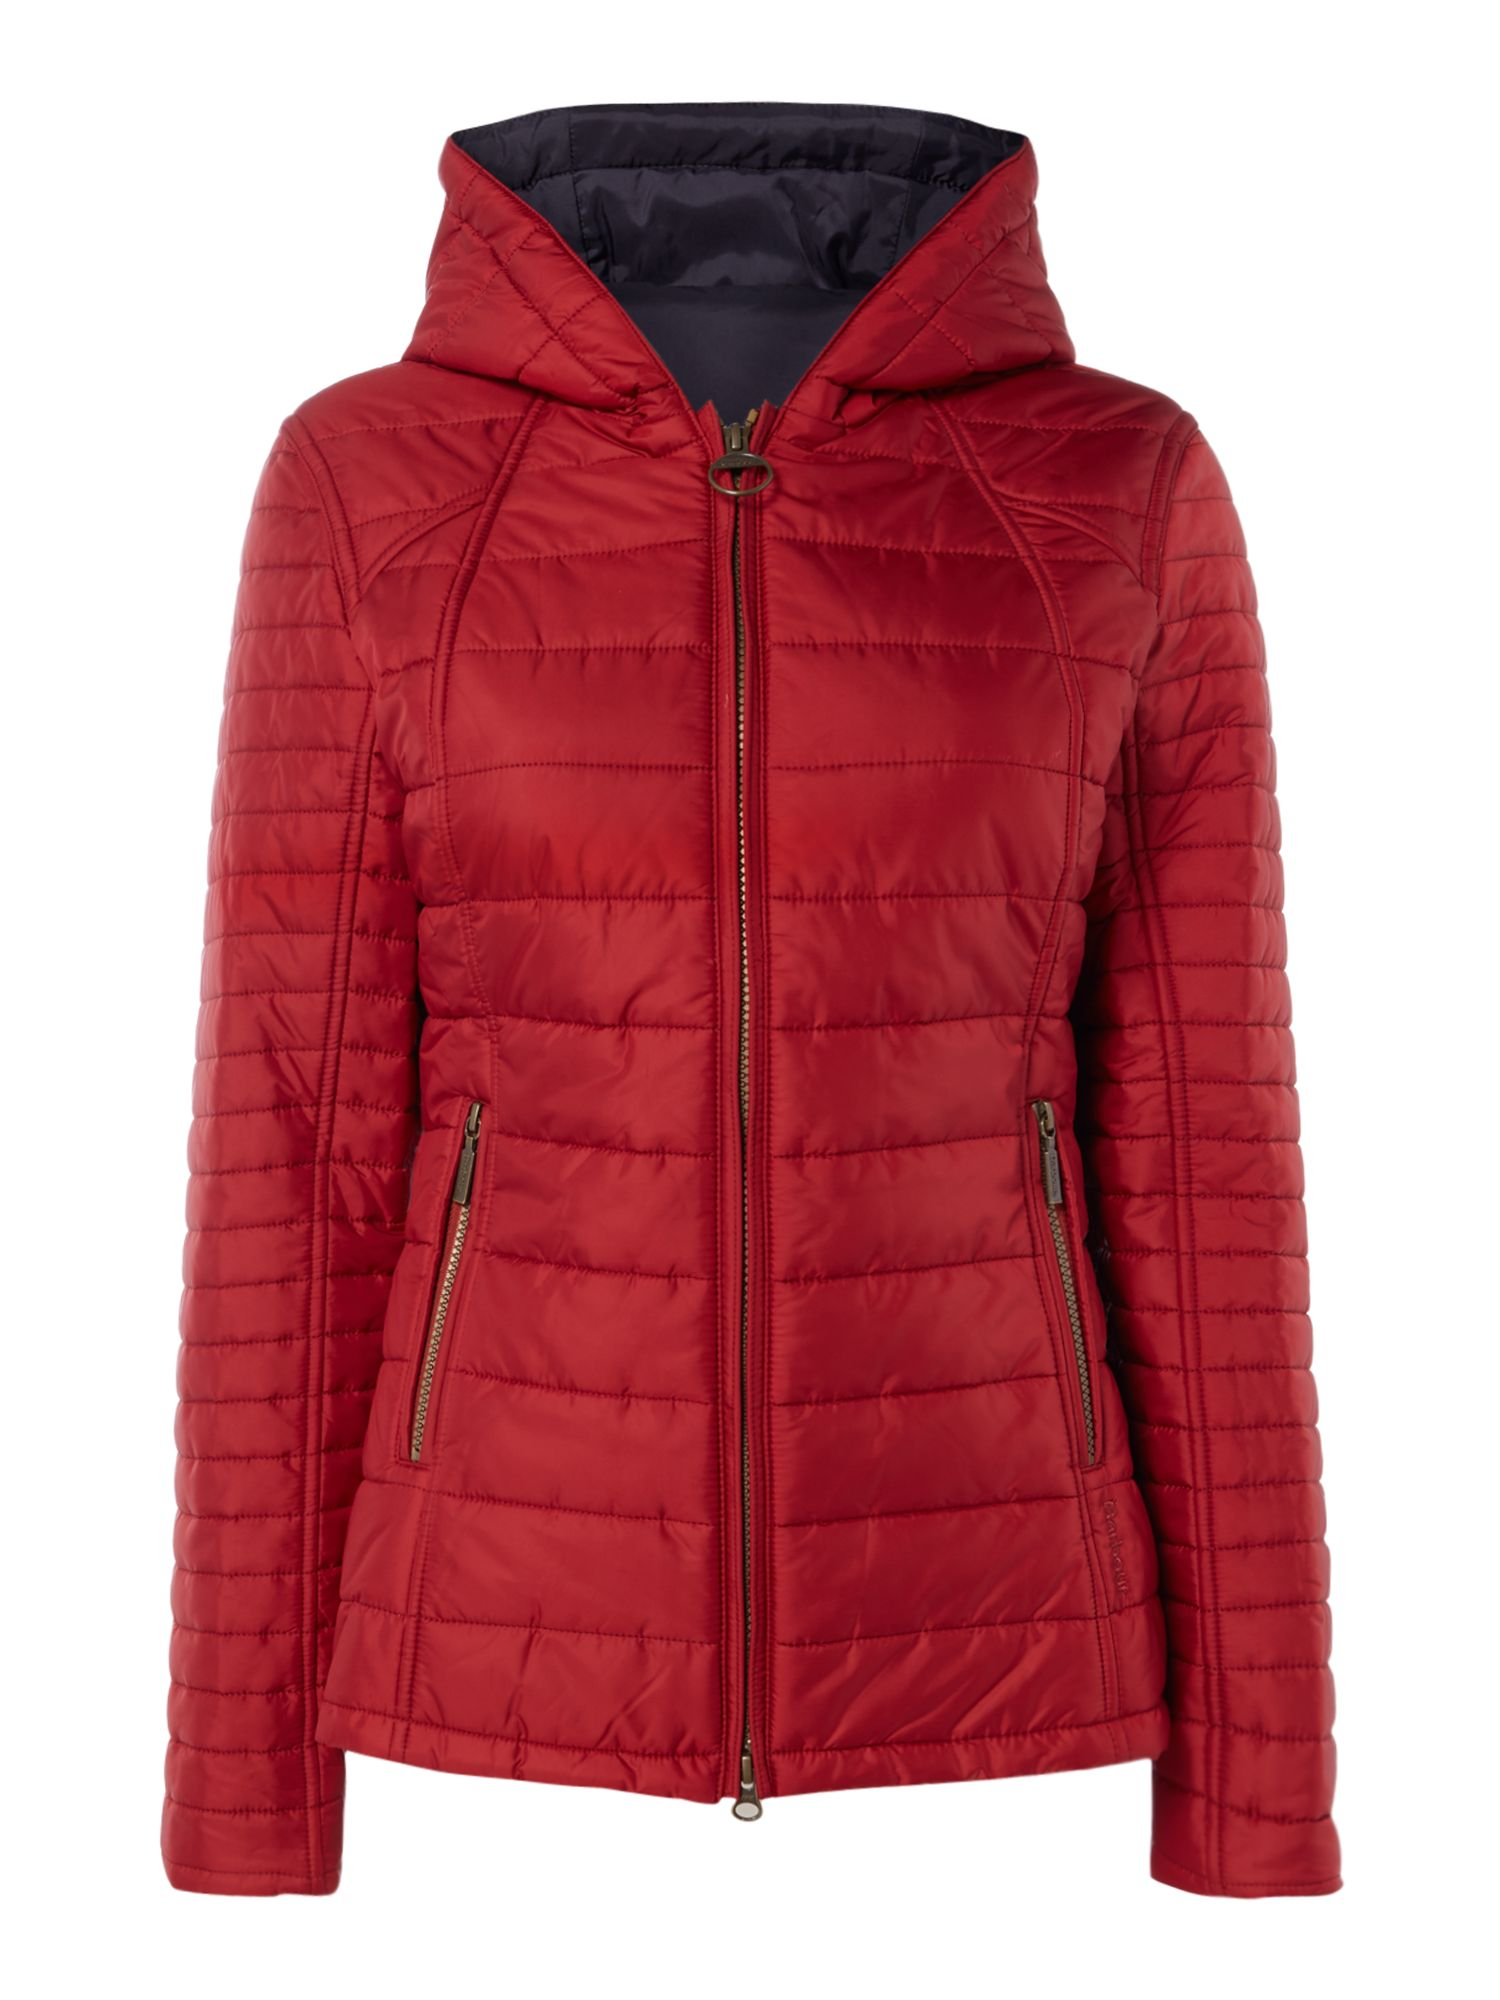 Barbour Cragside Quilted Jacket With Hood, Red